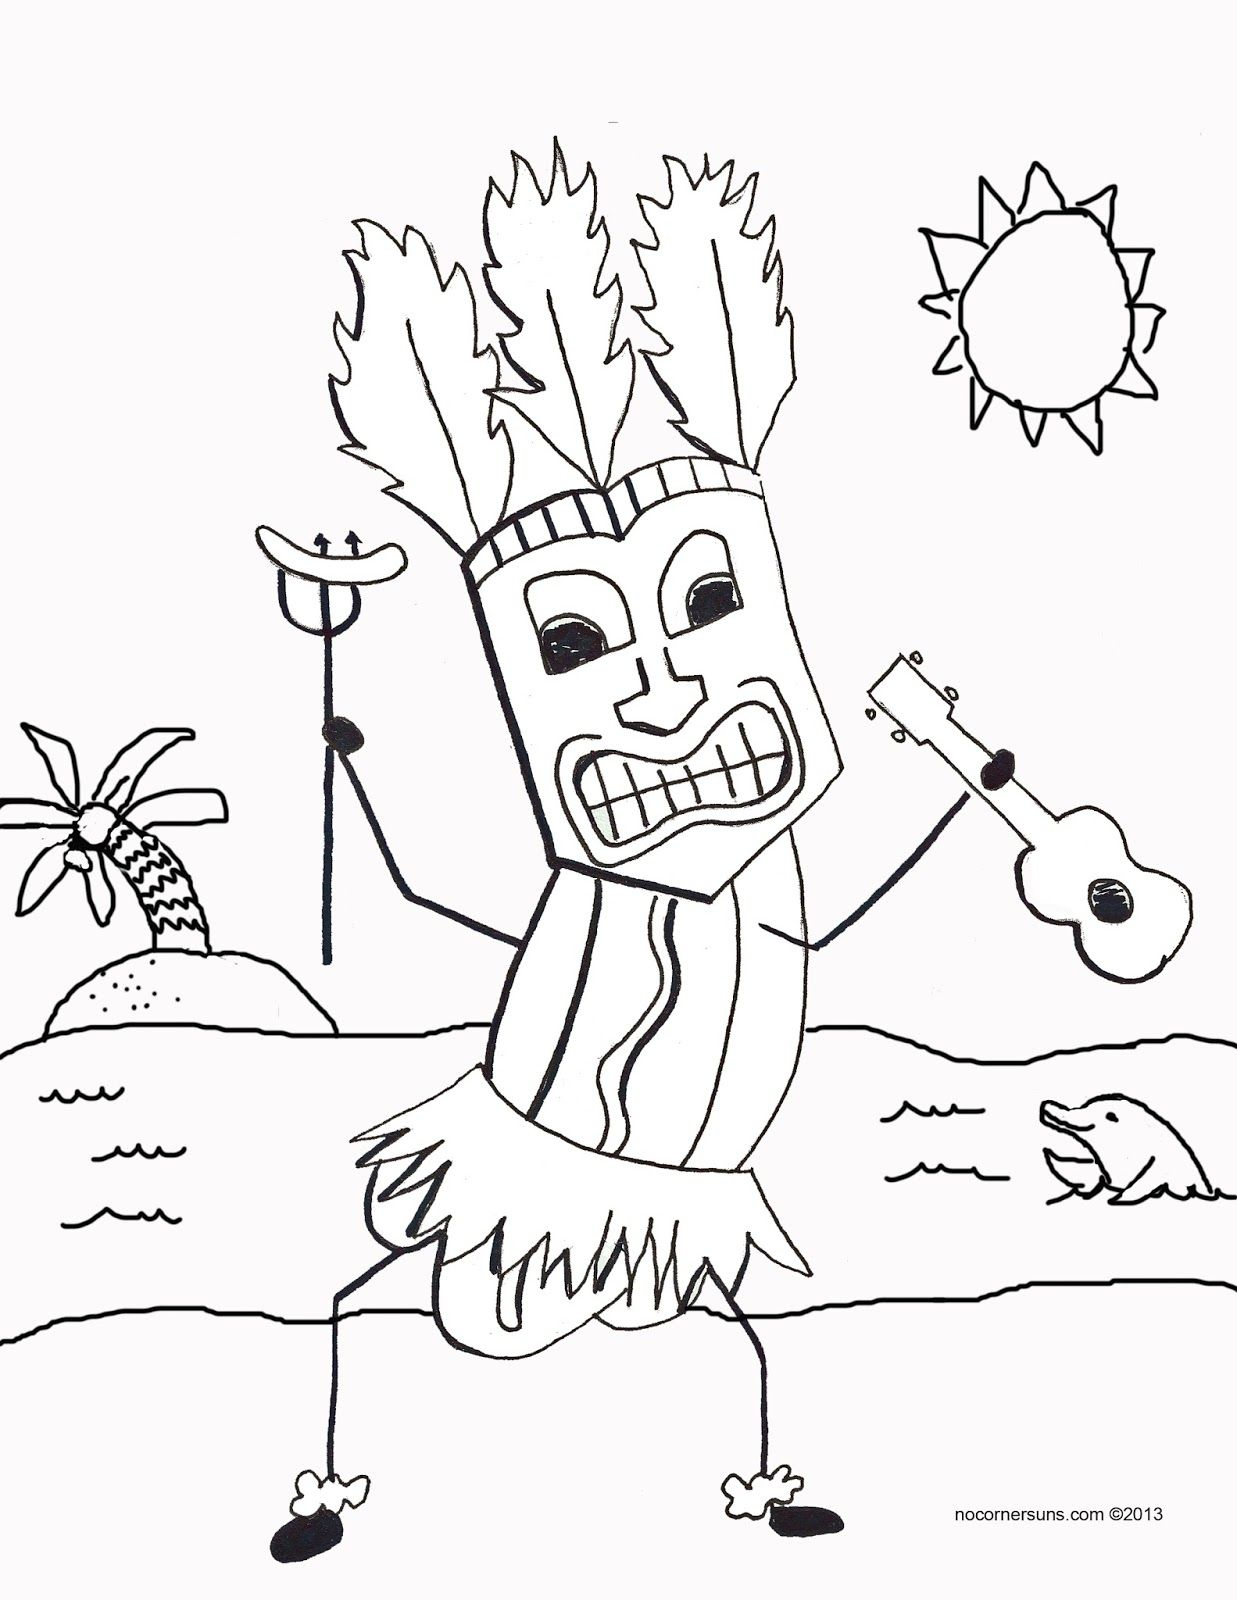 Tiki hot dog with ukulele coloring page Coloring Pages